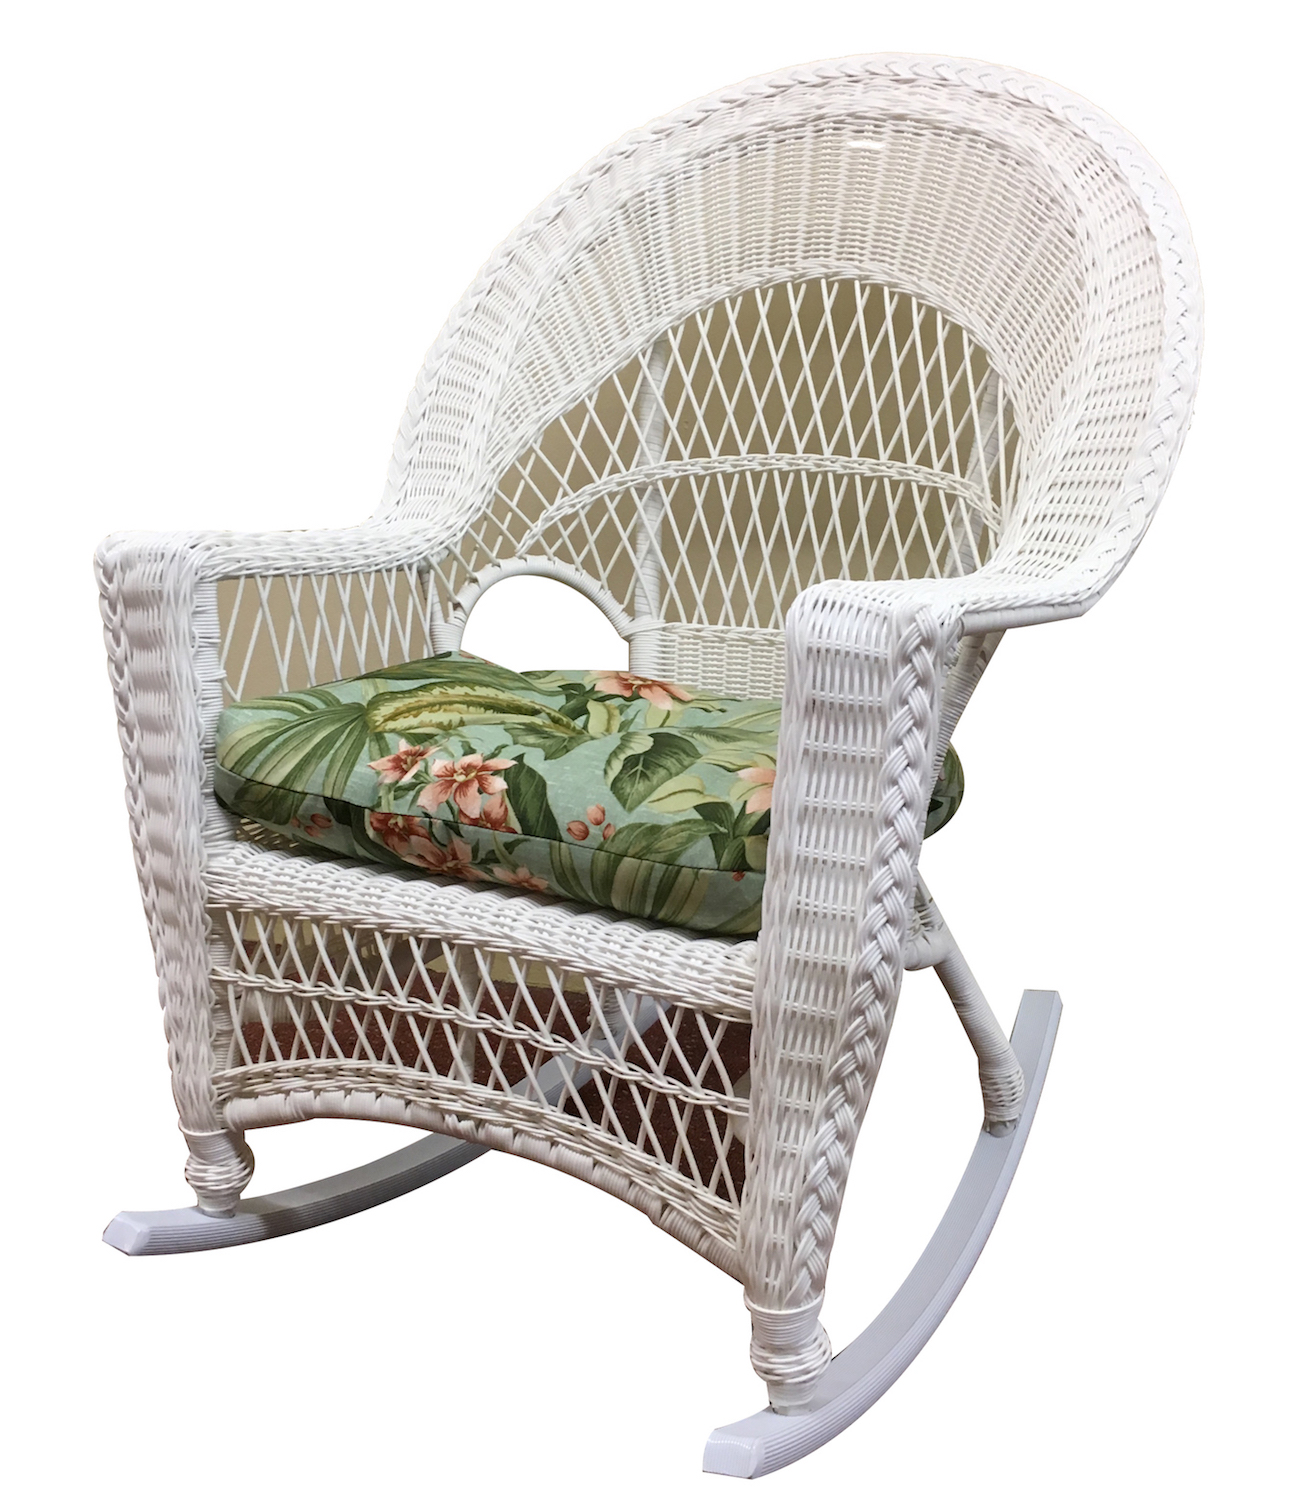 Wicker Rocking Chairs A1 Rated Chairs For Your Home